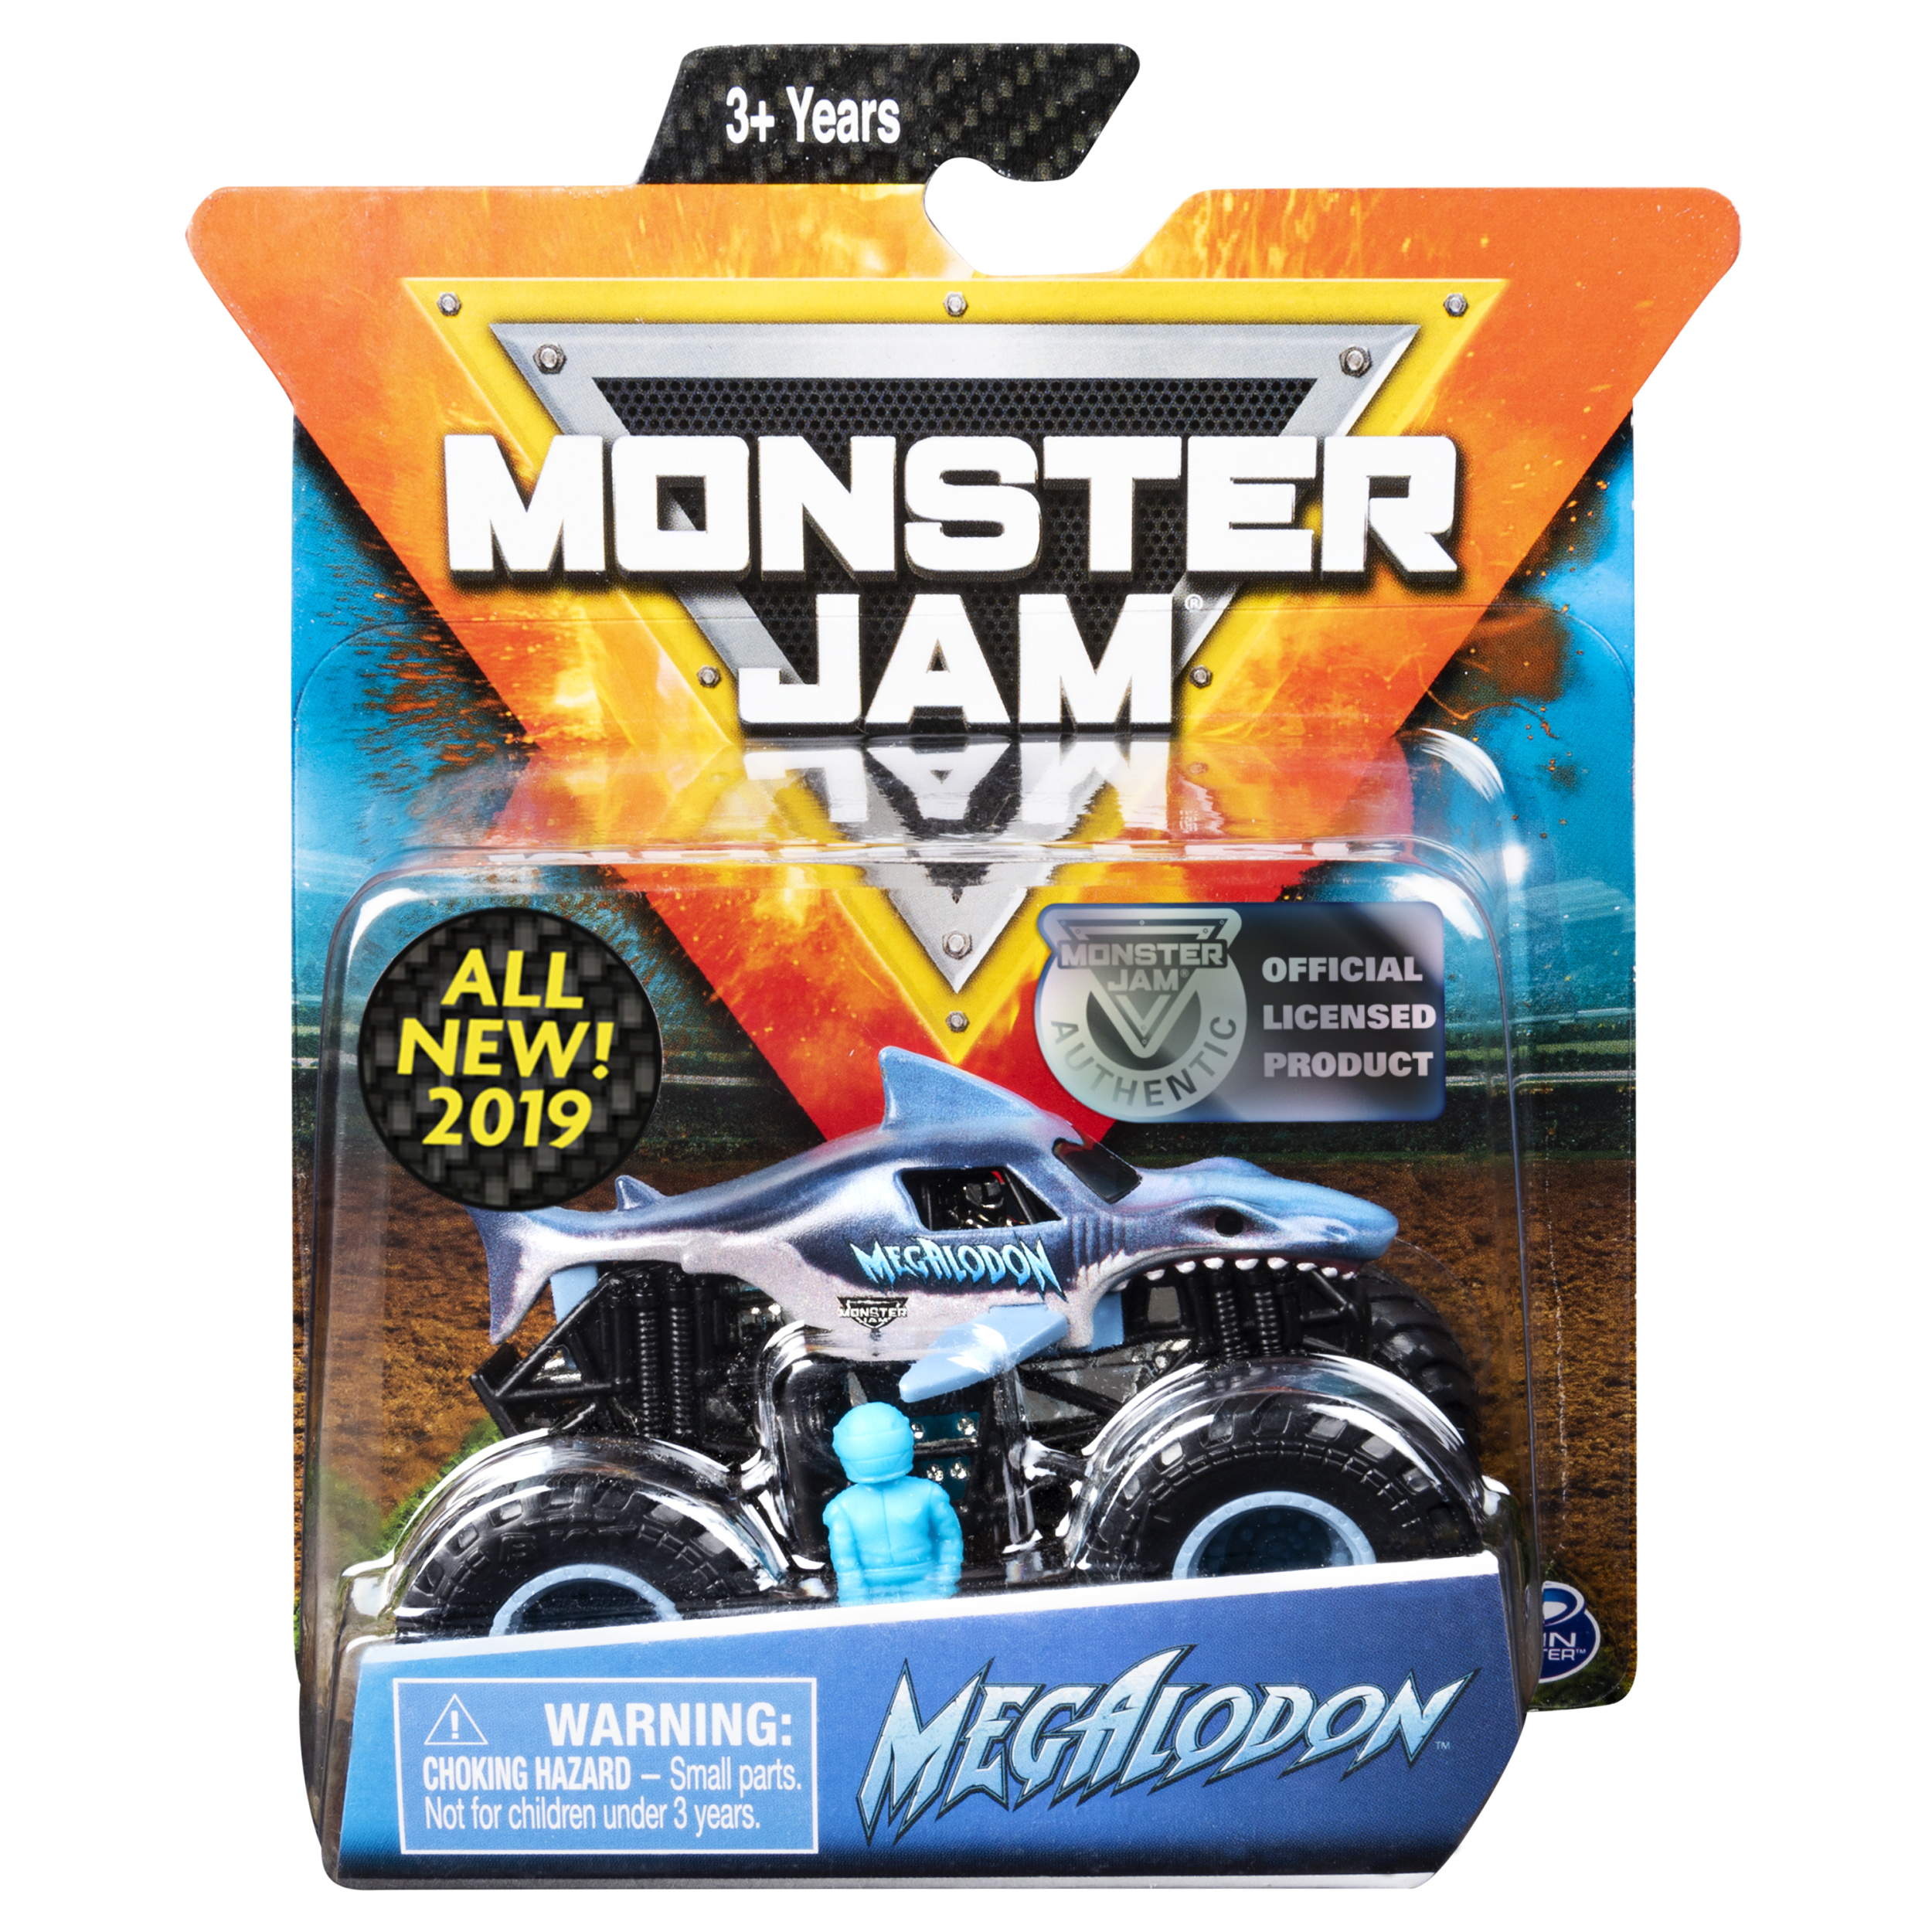 Monster Jam, Official Megalodon Monster Truck, Die-Cast Vehicle, Crazy Creatures Series, 1:64 Scale